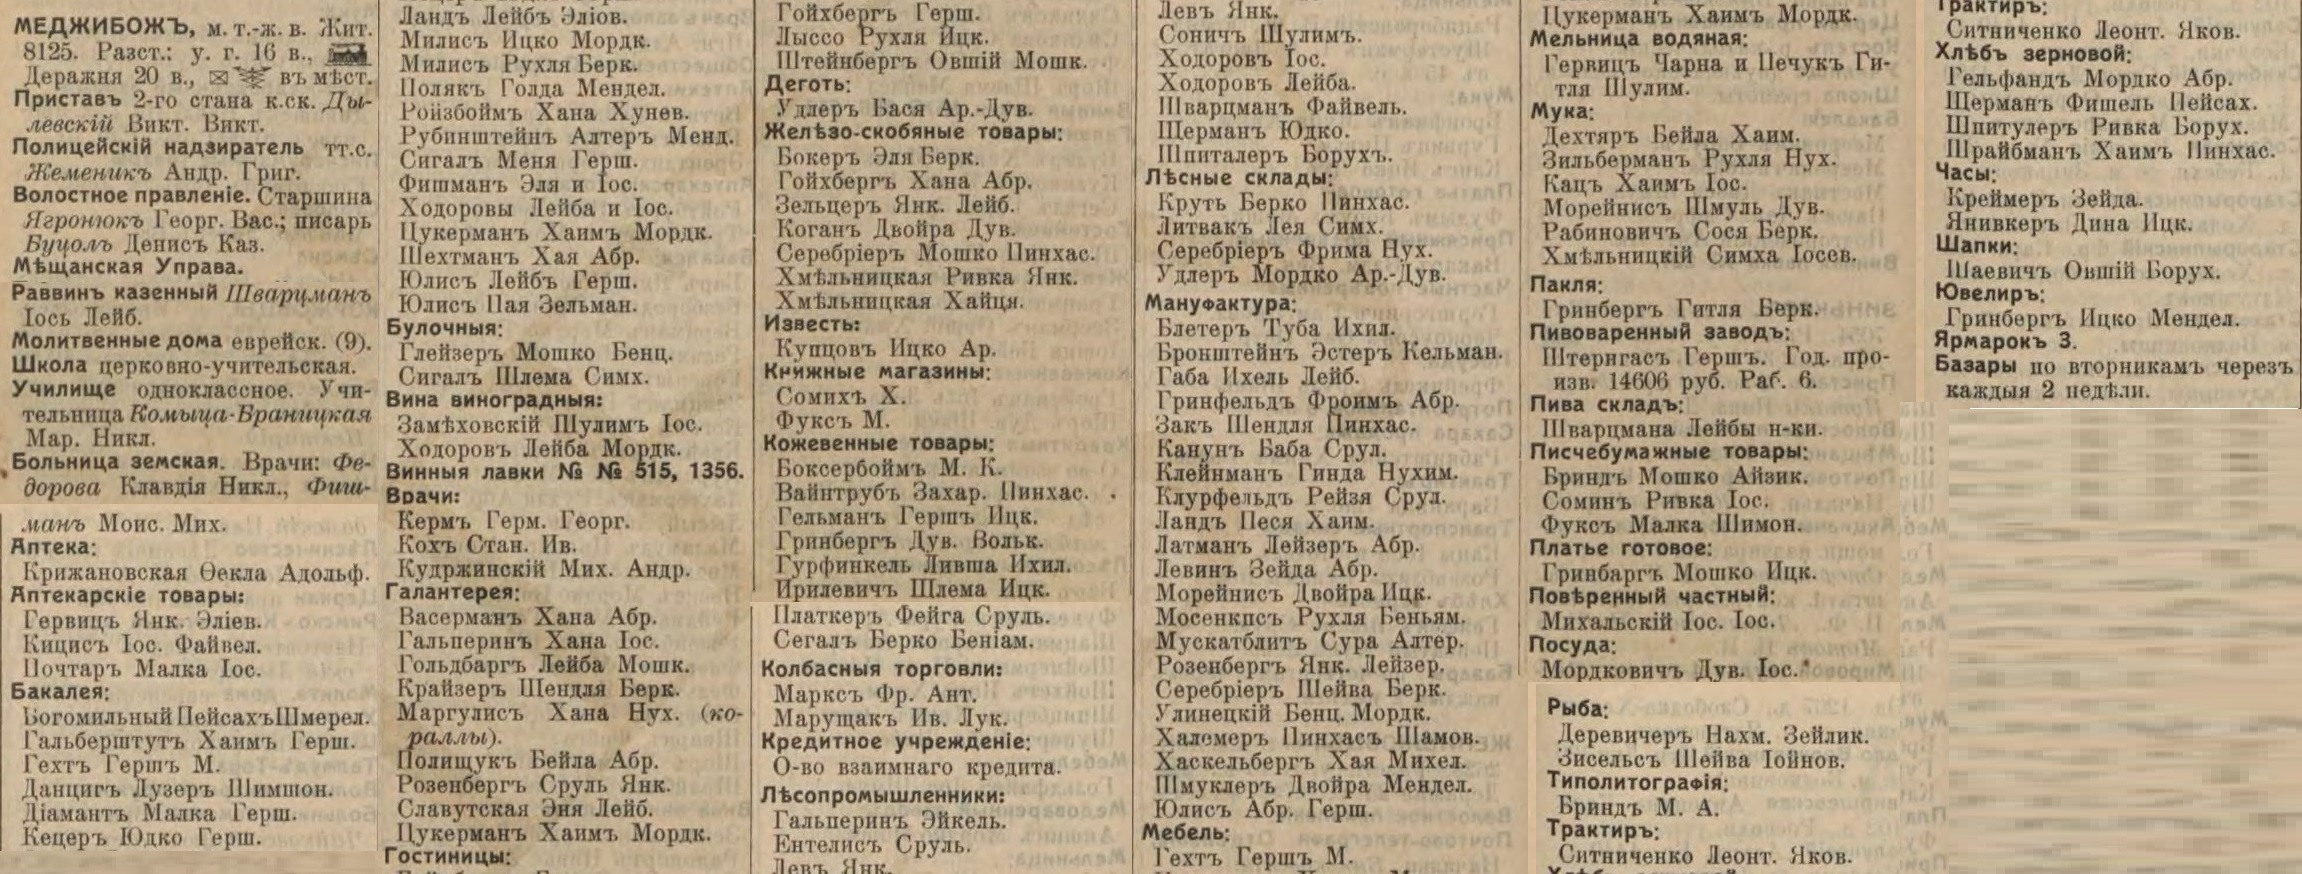 Medzhibozh entrepreneurs list from Russian Empire Business Directories by 1913